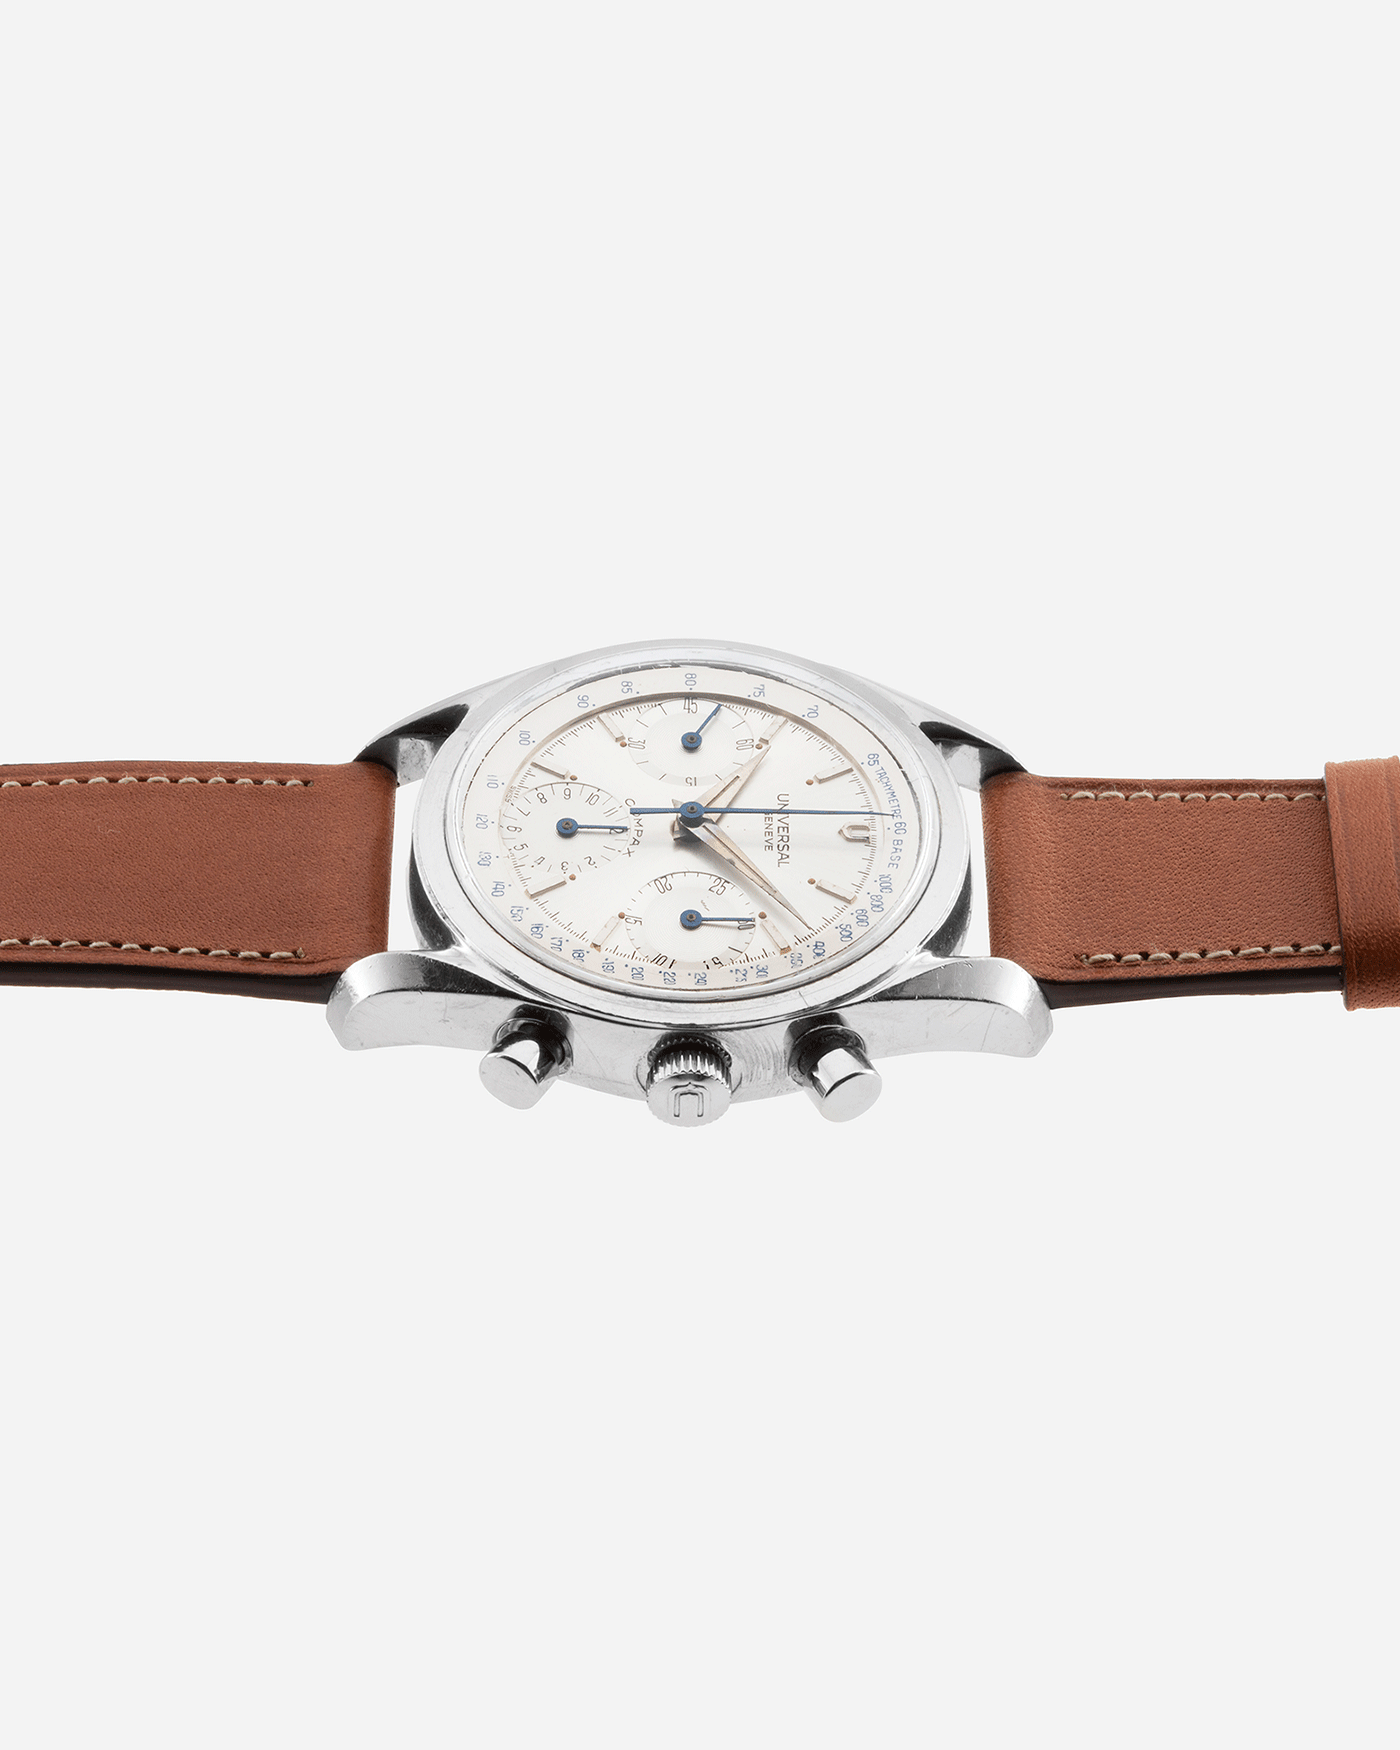 Universal Geneve Compax 22705-1 Chronograph Vintage Watch | S.Song Vintage Watches Mark Eleven